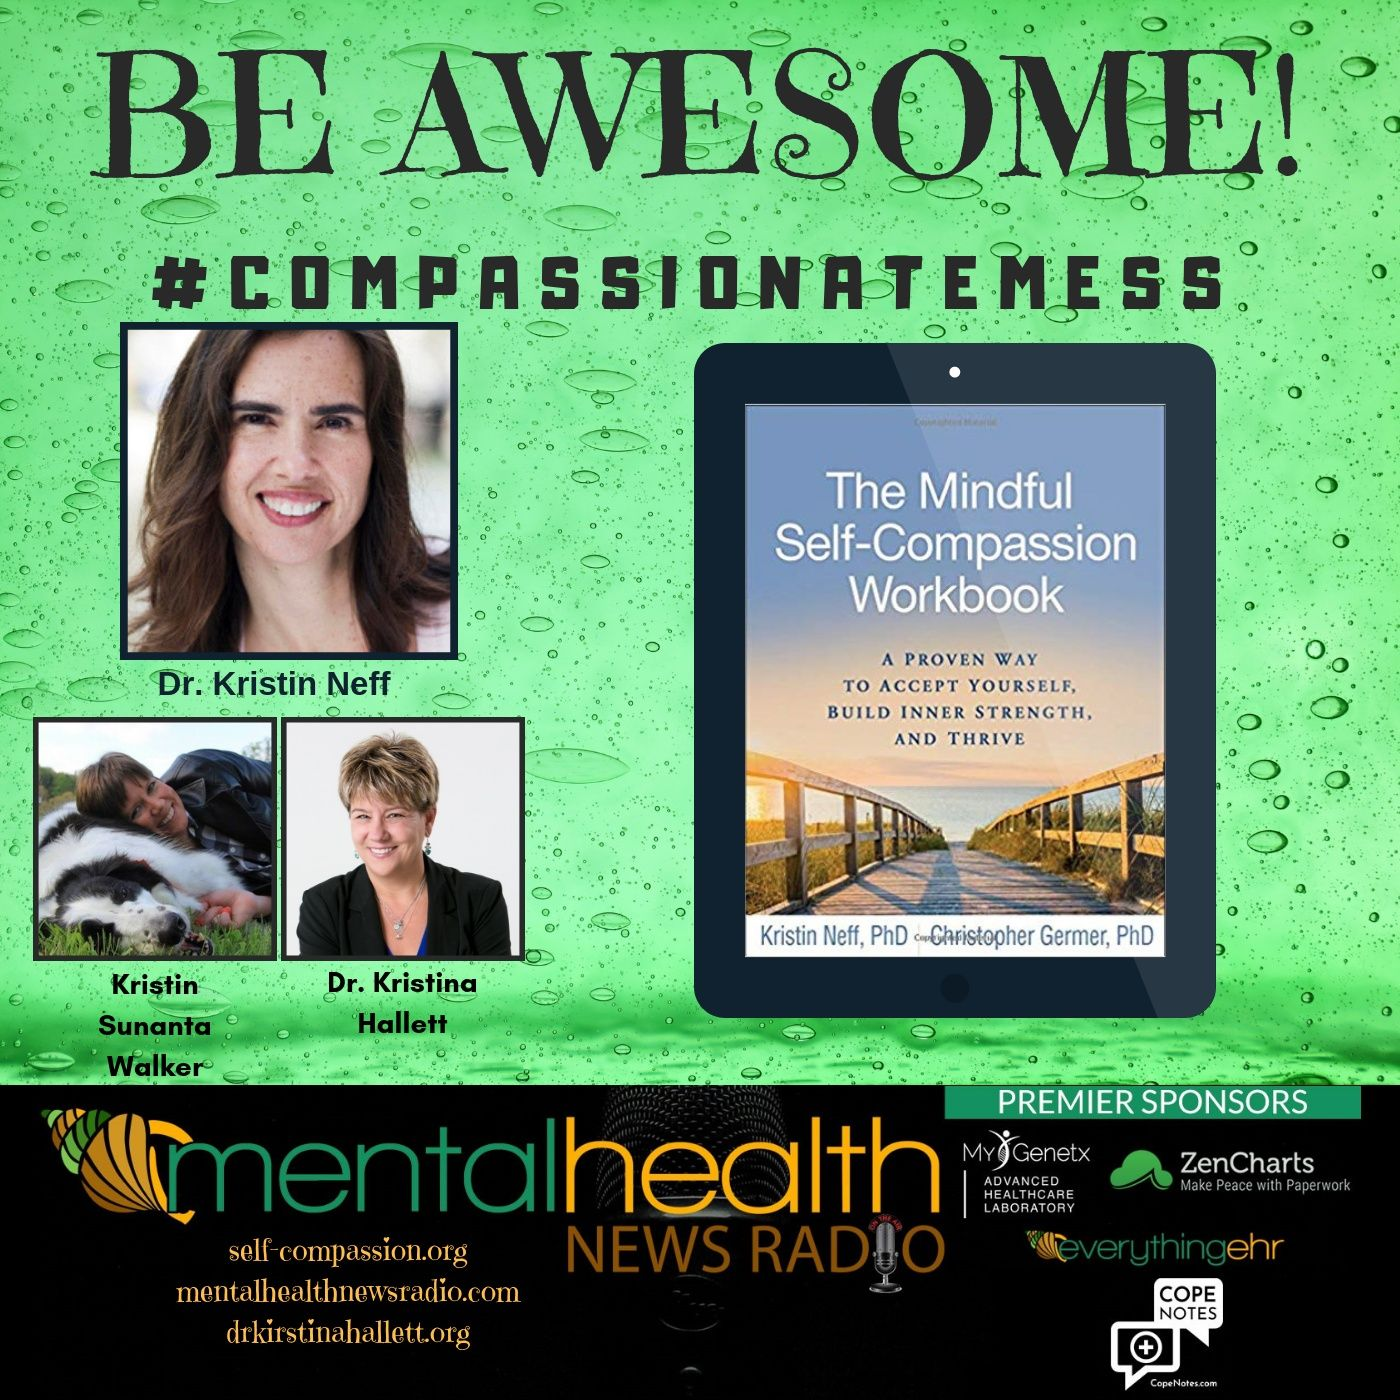 Mental Health News Radio - Be Awesome: #CompassionateMess with Dr. Kristin Neff